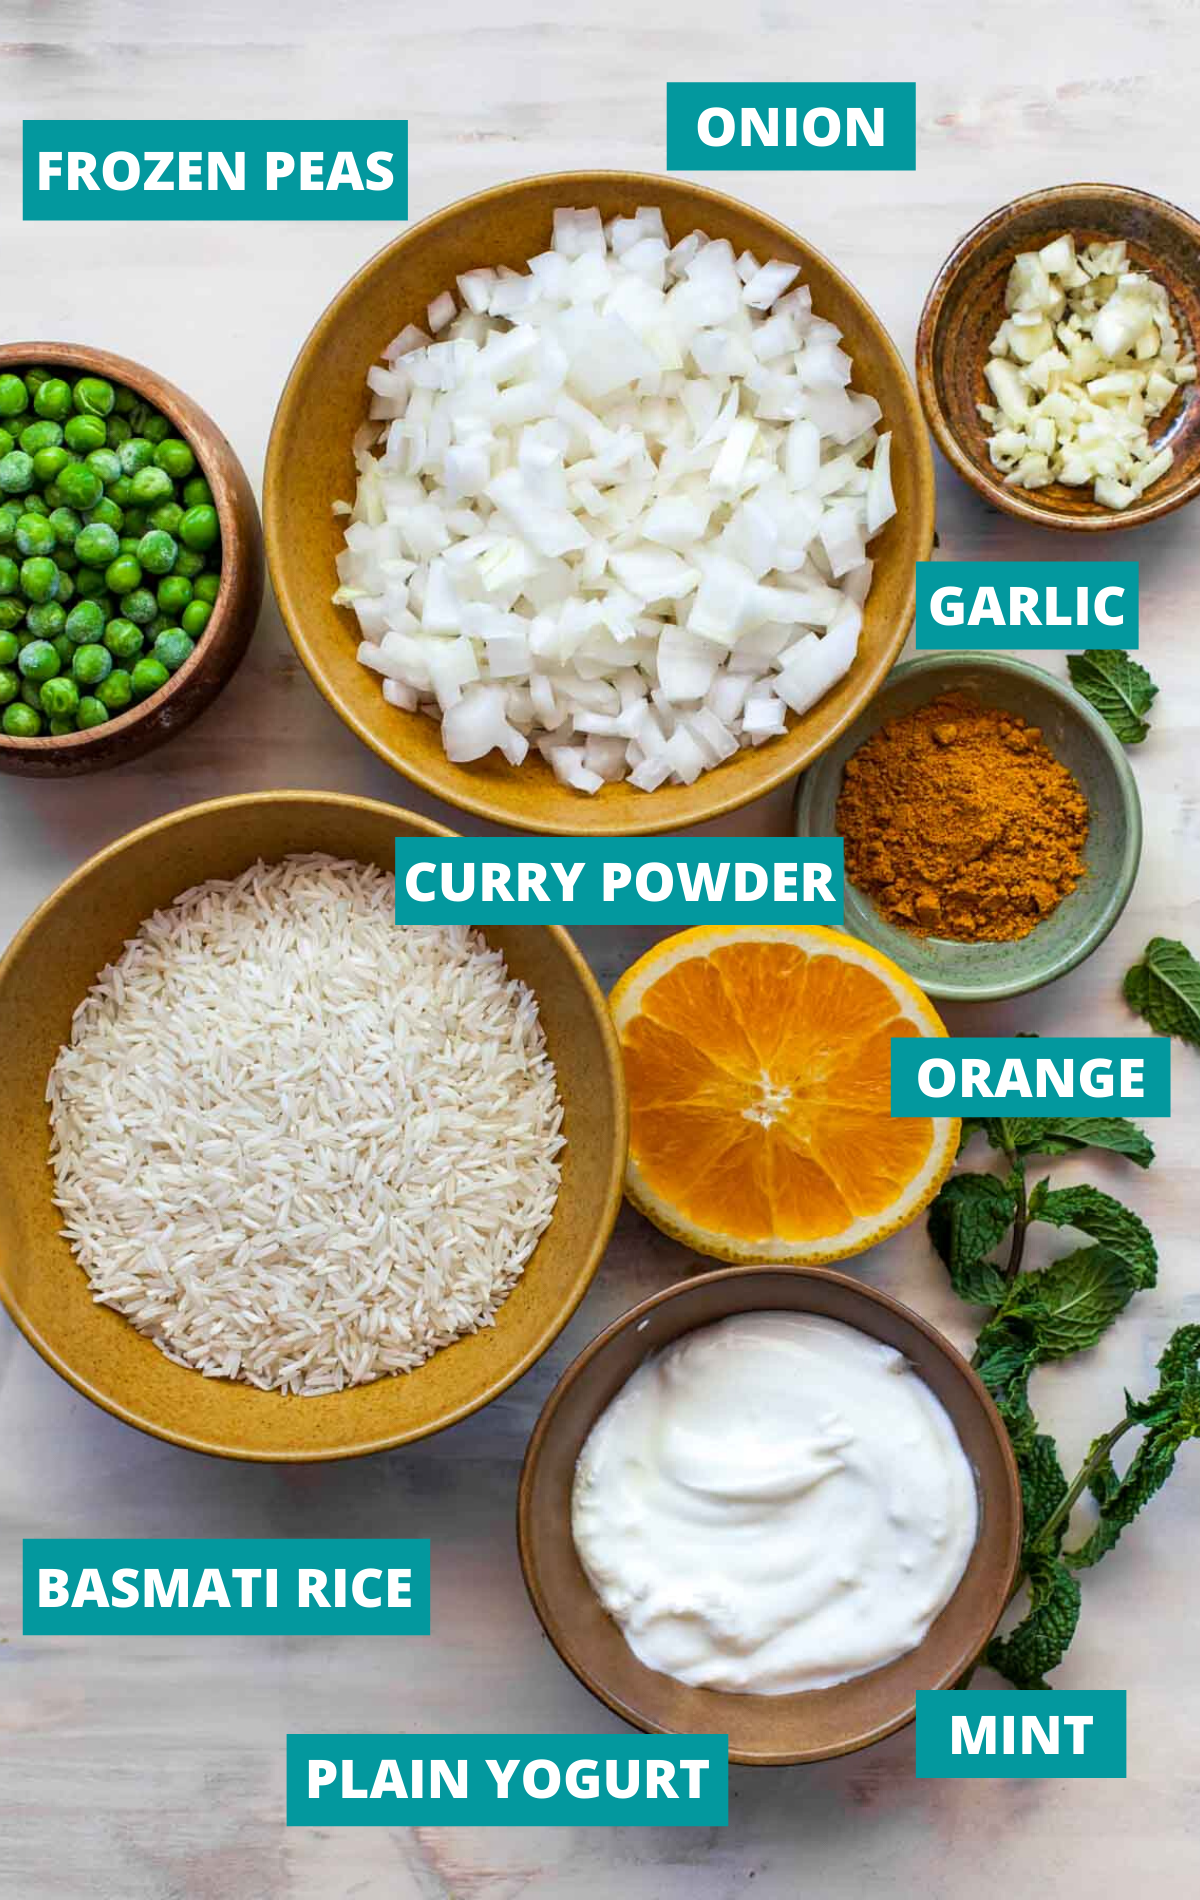 Rice, onion, yogurt, peas, and garlic in separate bowls on a tan board with ingredient labels